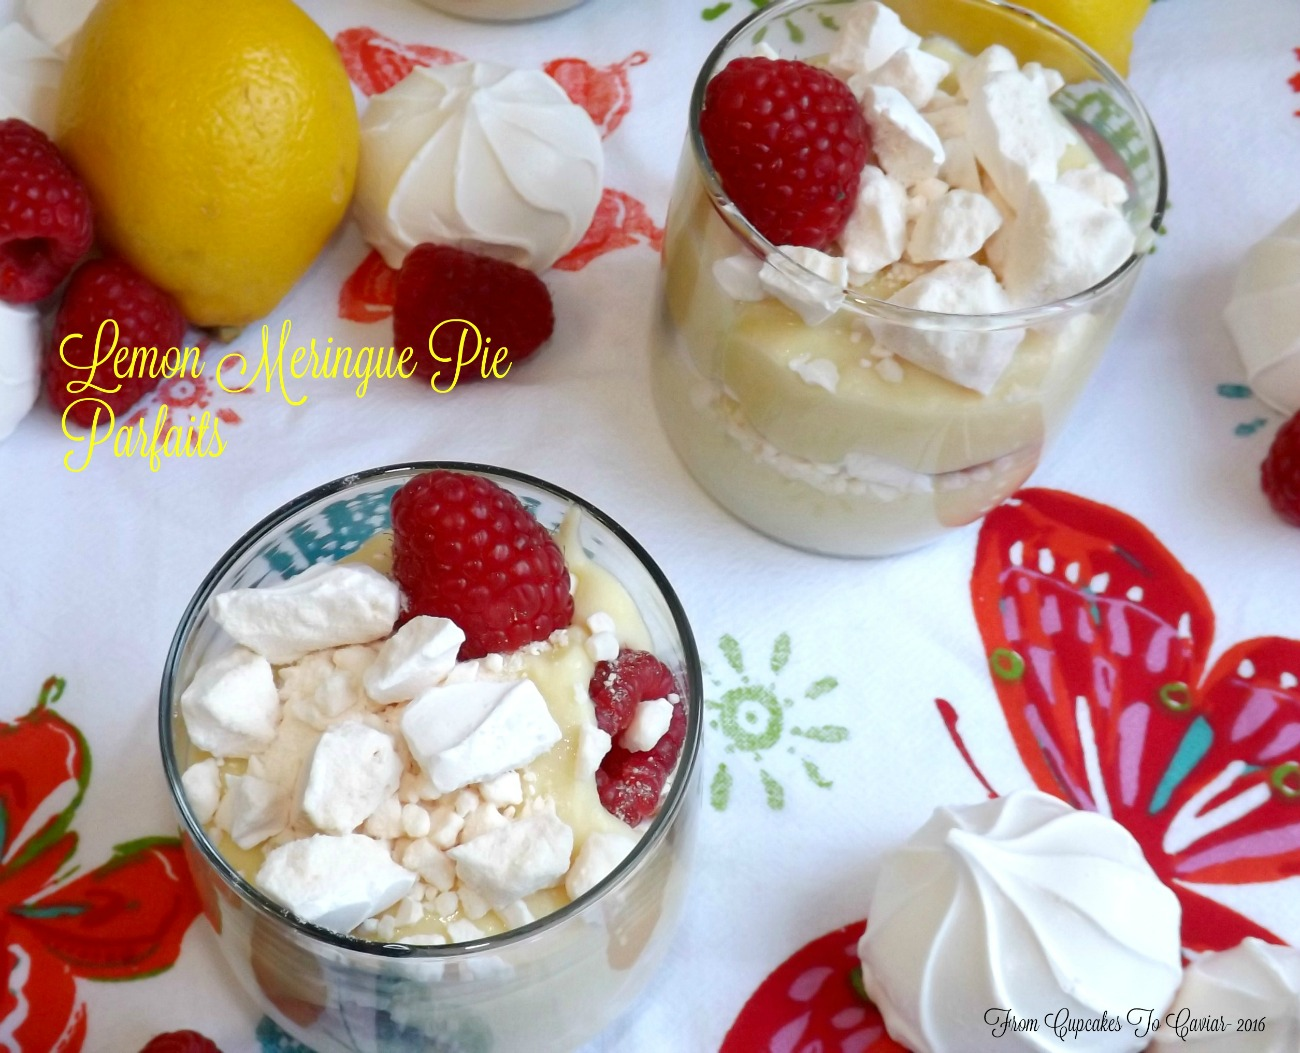 Lemon Meringue Pie Parfaits